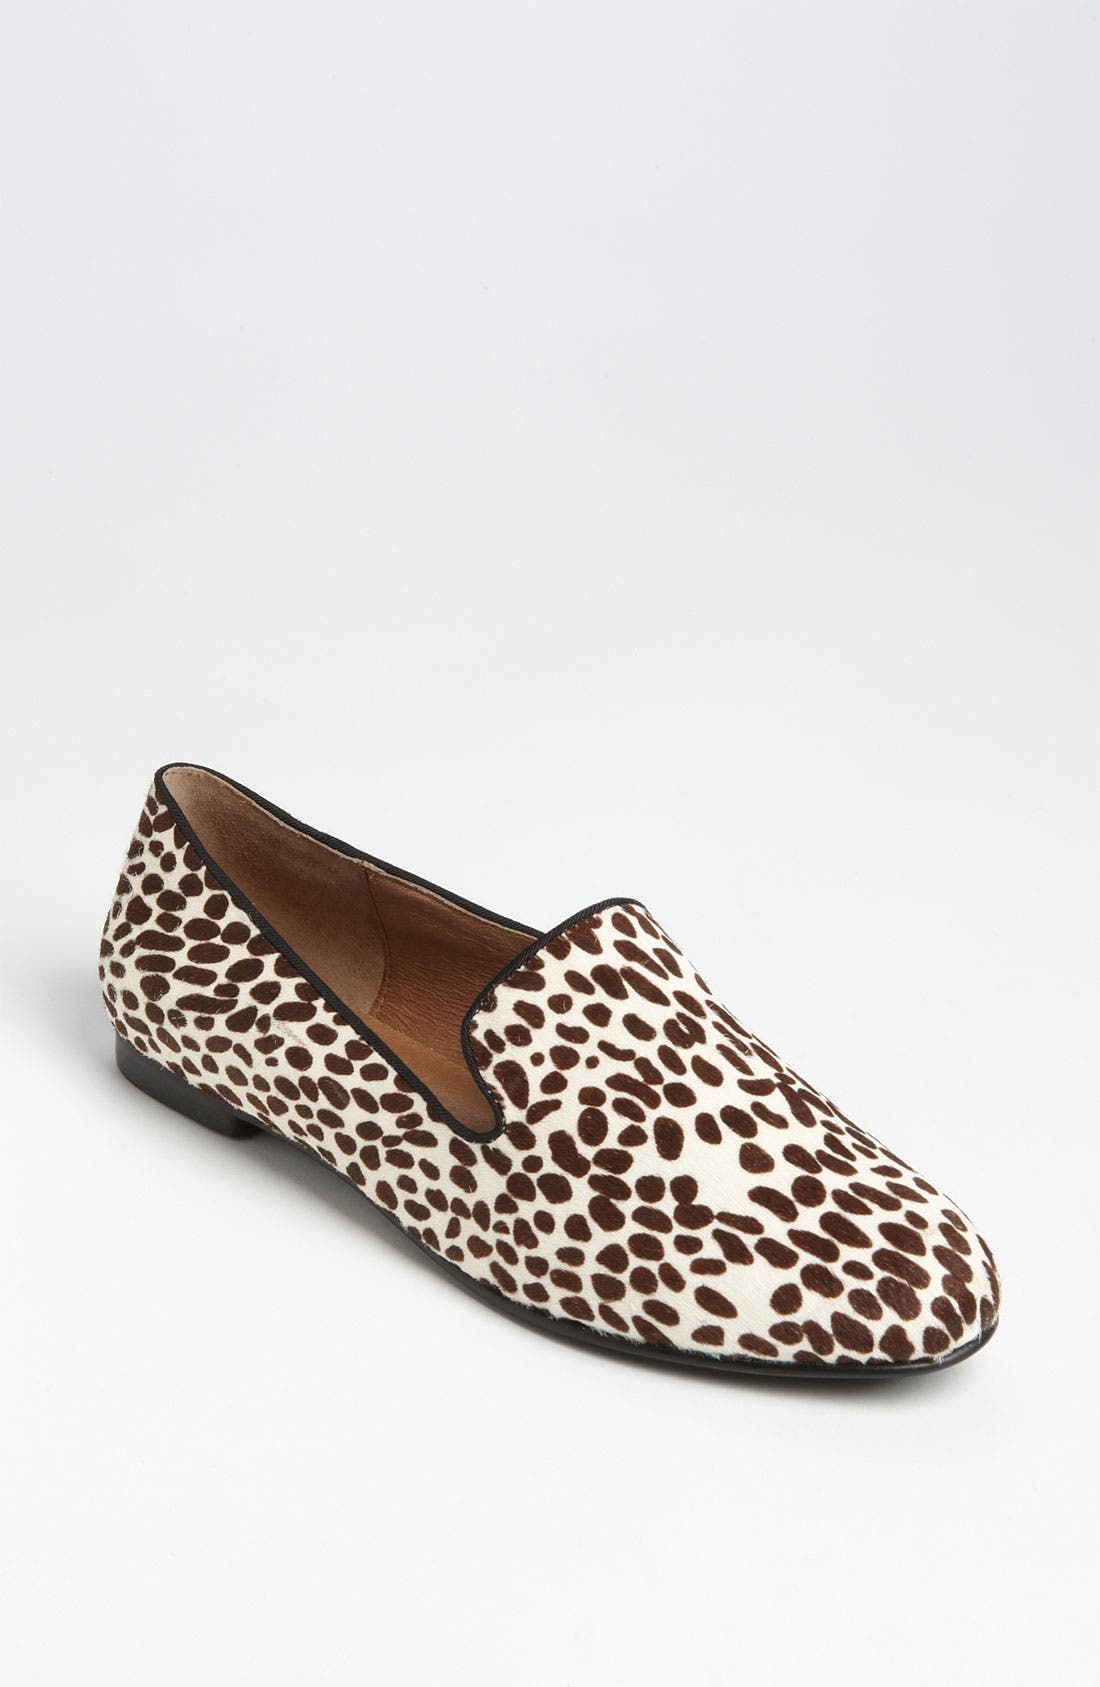 Main Image - Steven by Steve Madden 'Madee' Slip-On